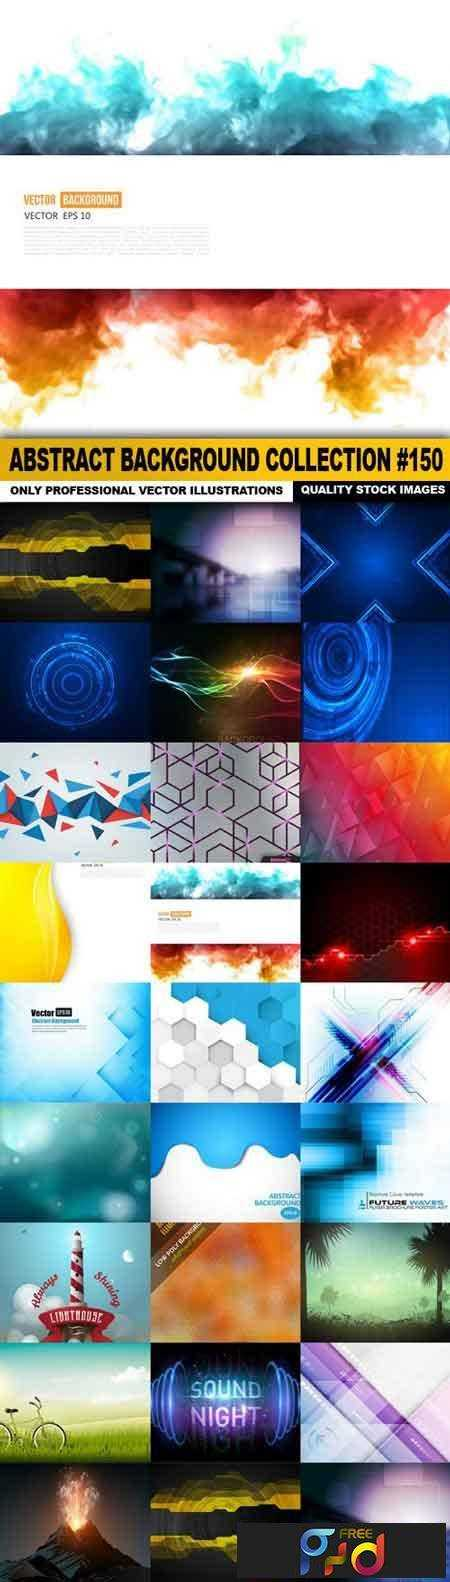 FreePsdVn.com_VECTOR_1701341_abstract_background_collection_150_25_vector